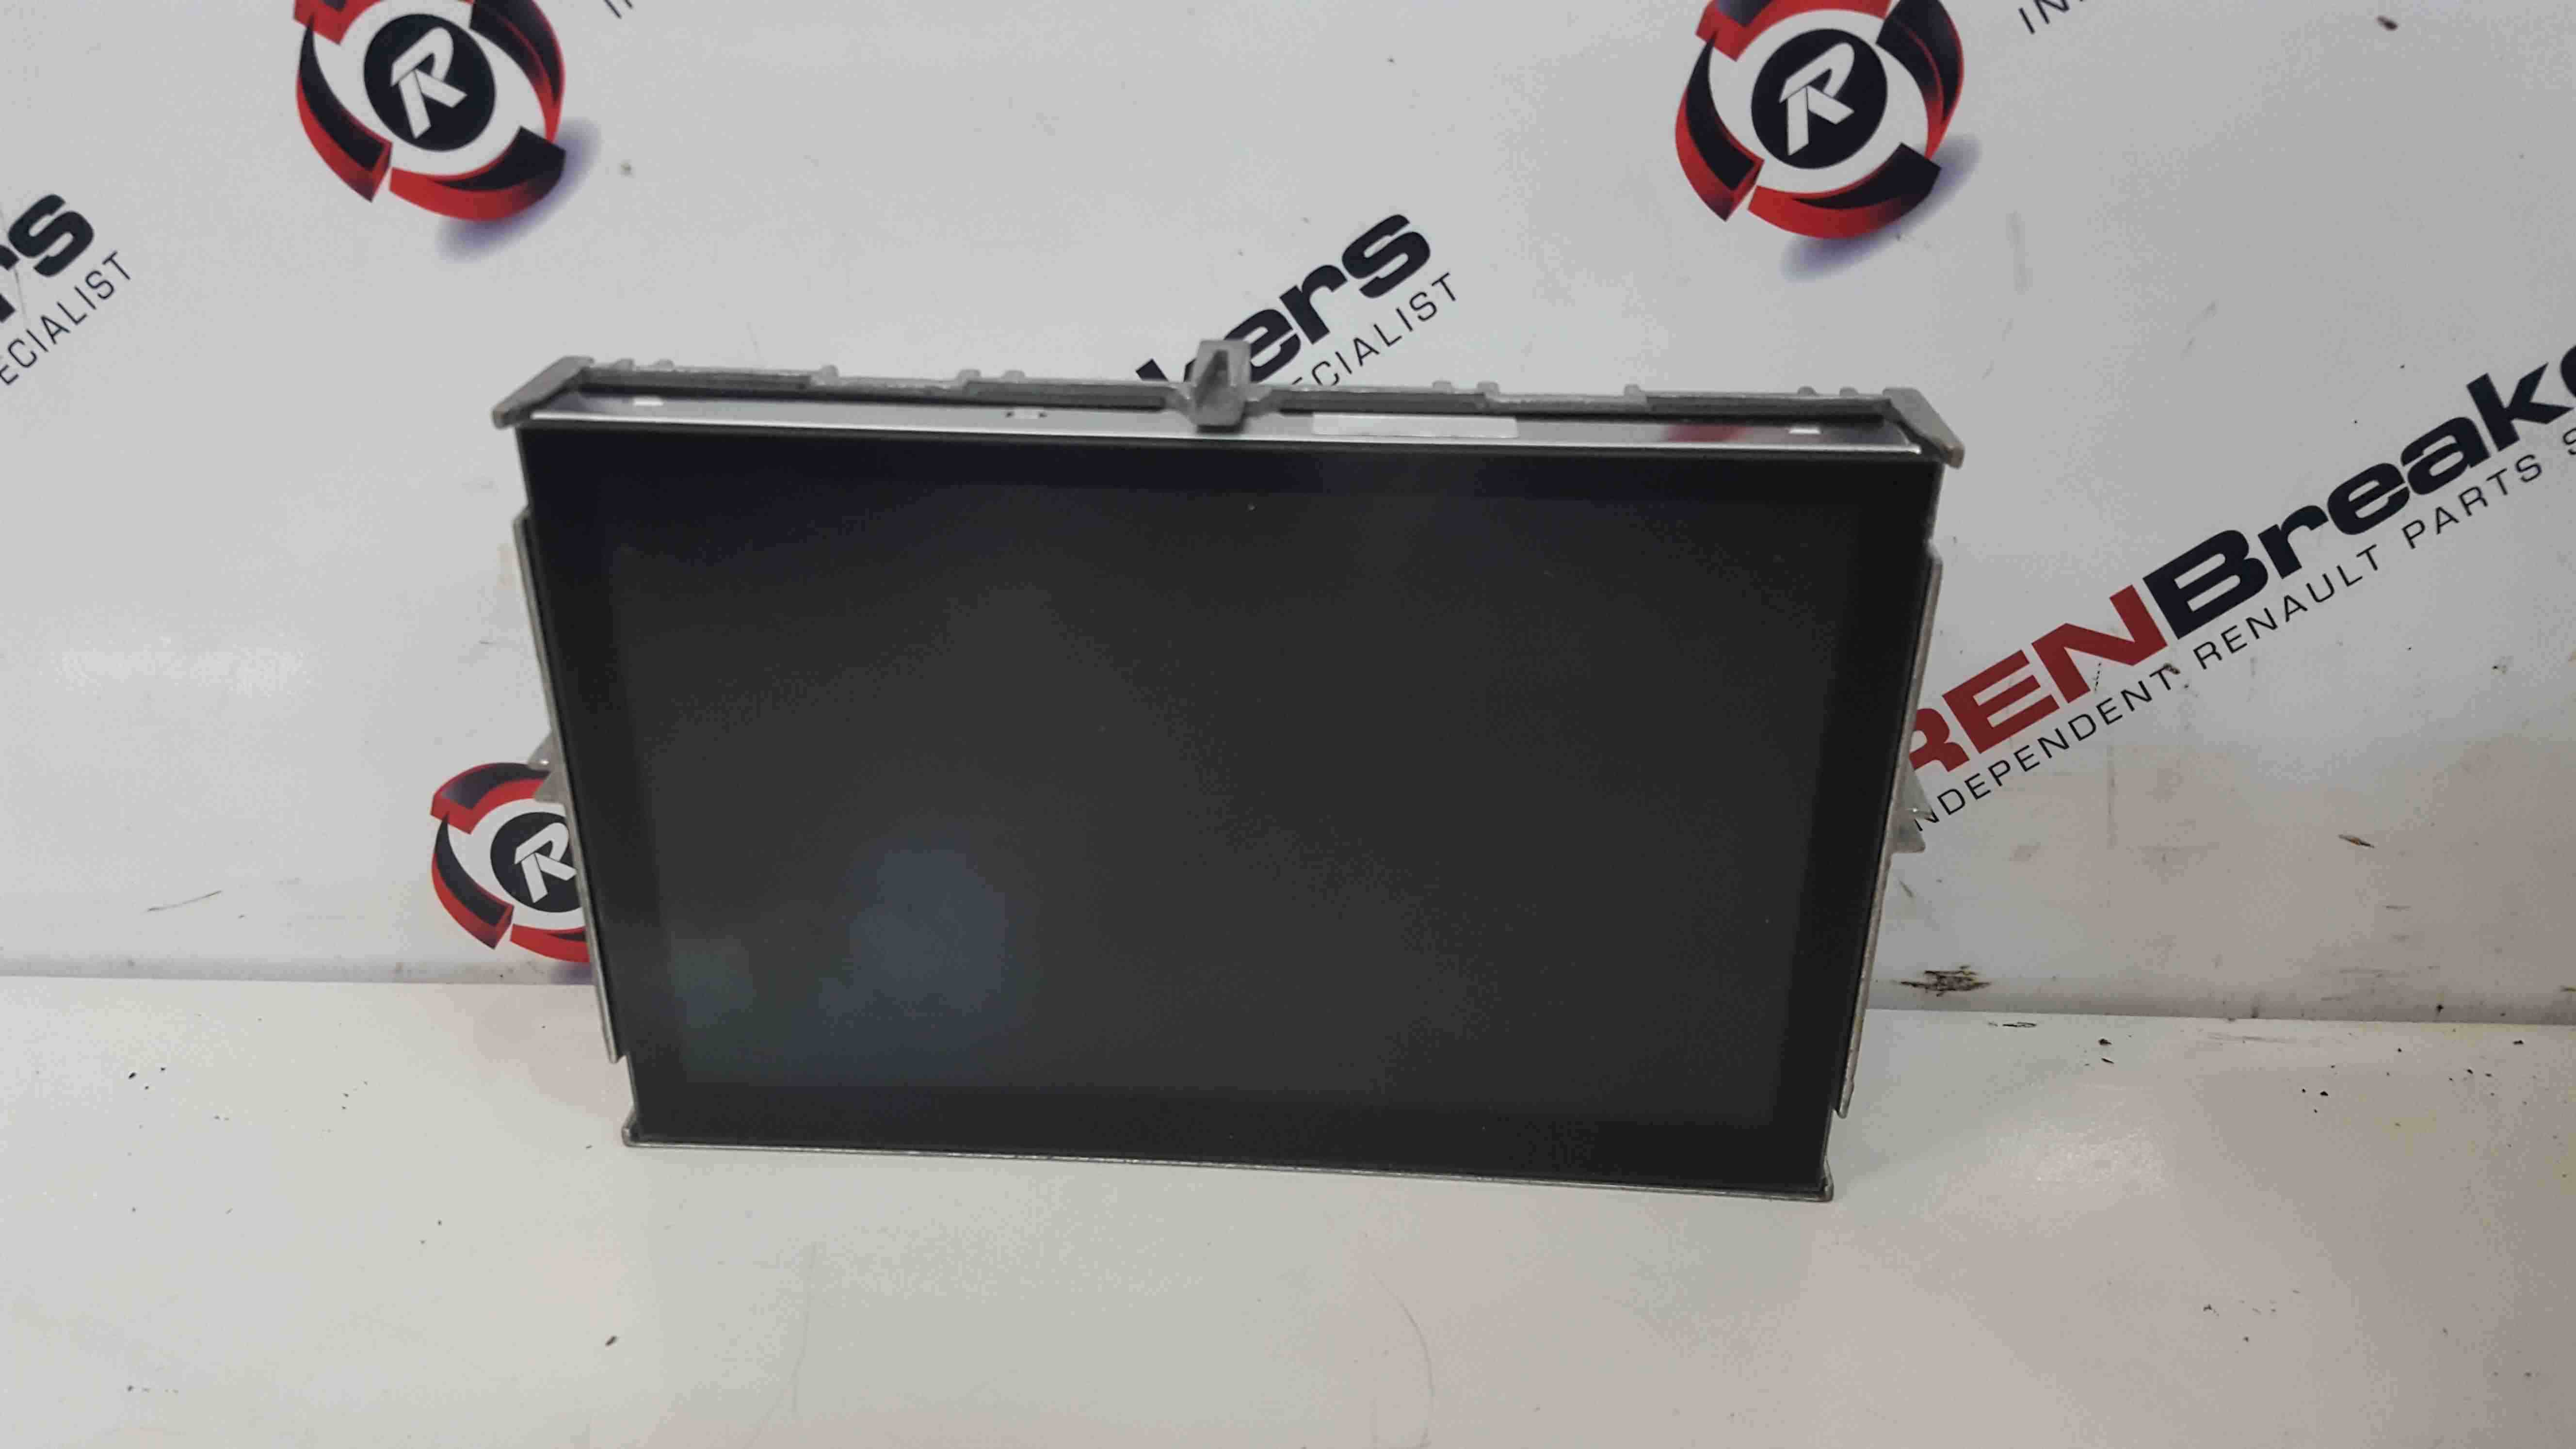 Renault Kadjar 2015-2021 Sat Nav Navigation Screen Display 280342118R